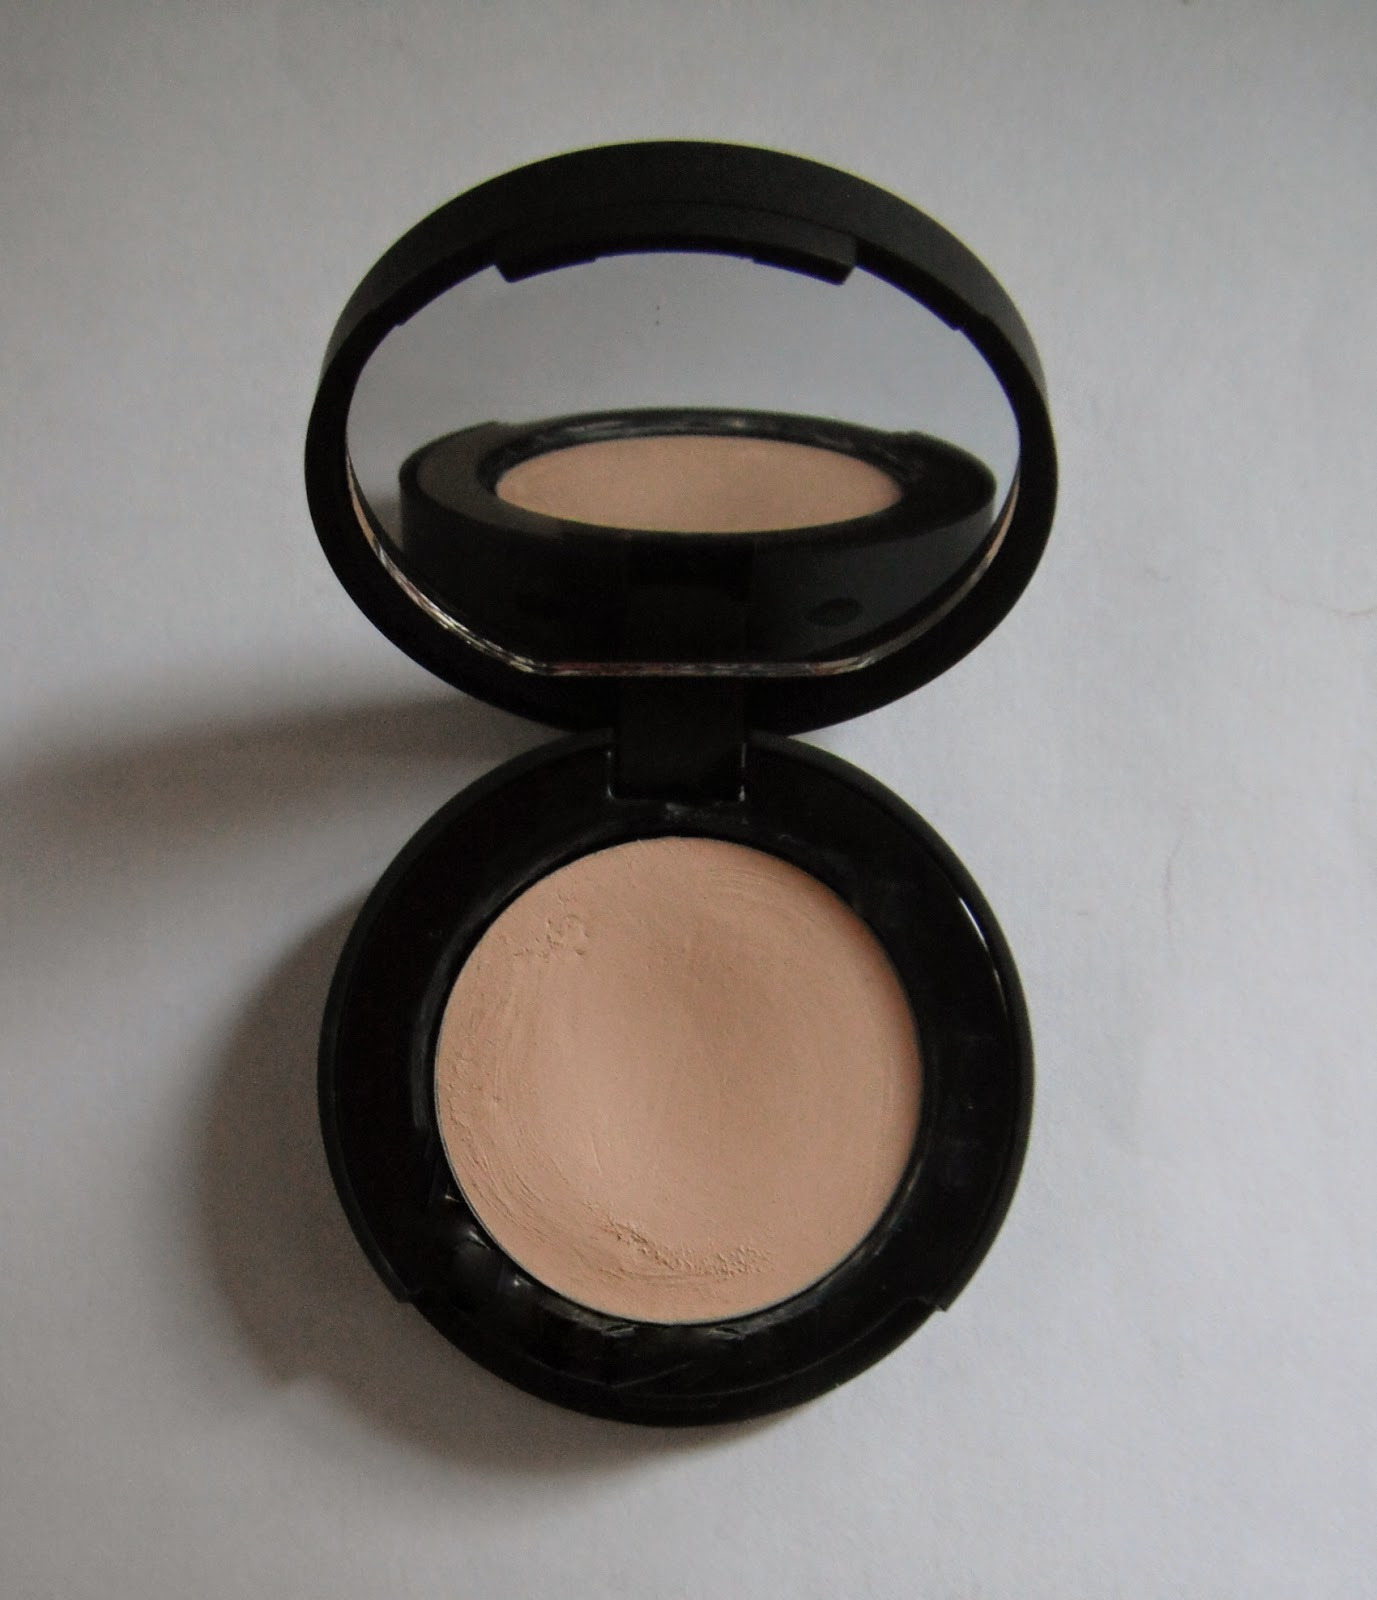 Full Coverage Concealer KIKO light